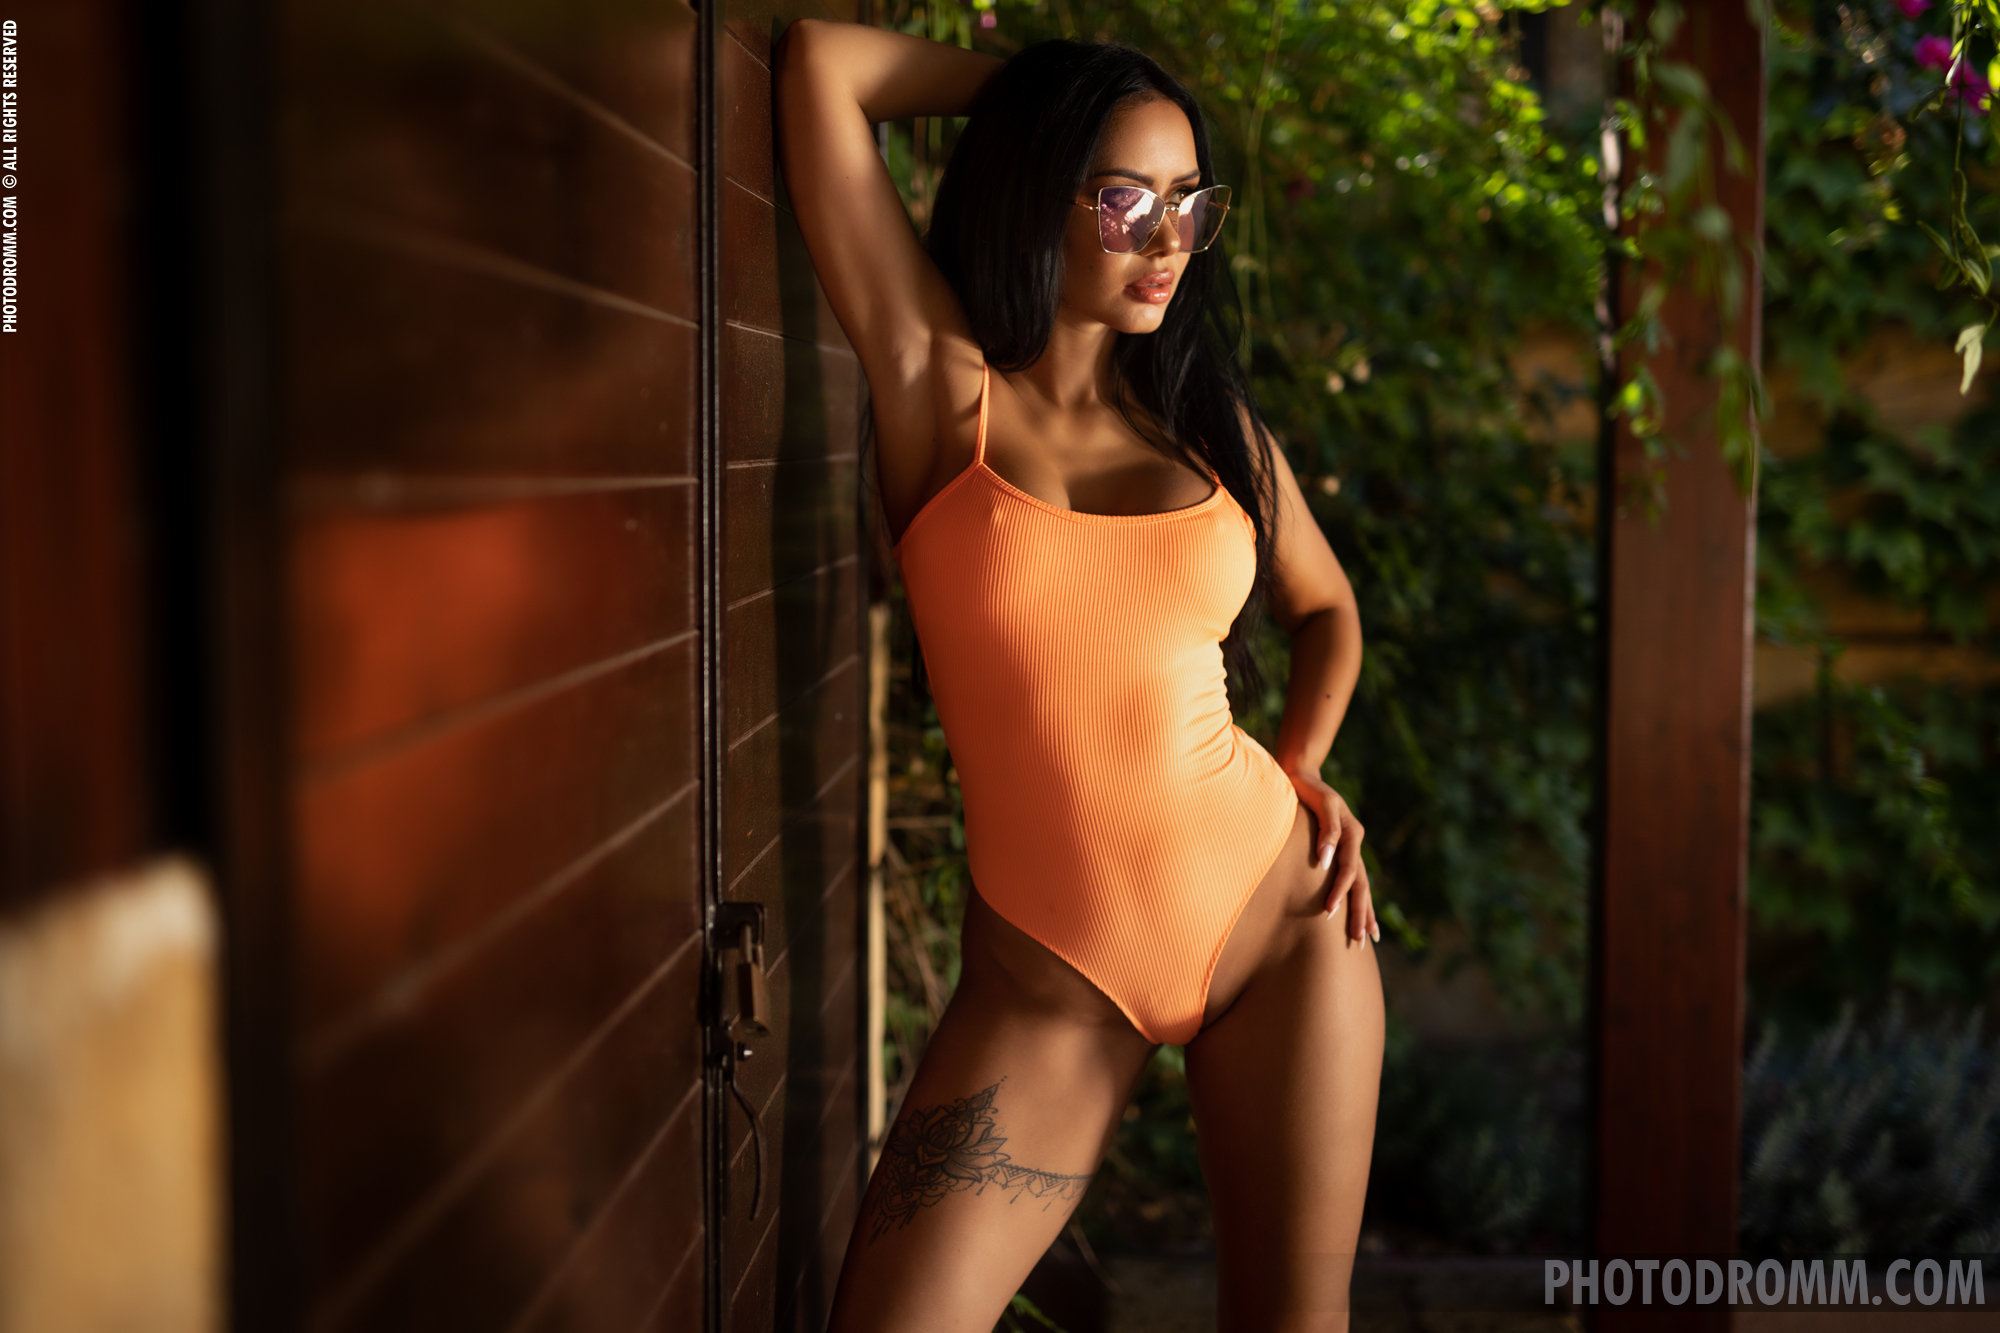 Mareeva Lovely Big Tits in Orange Swimsuit for Photodromm